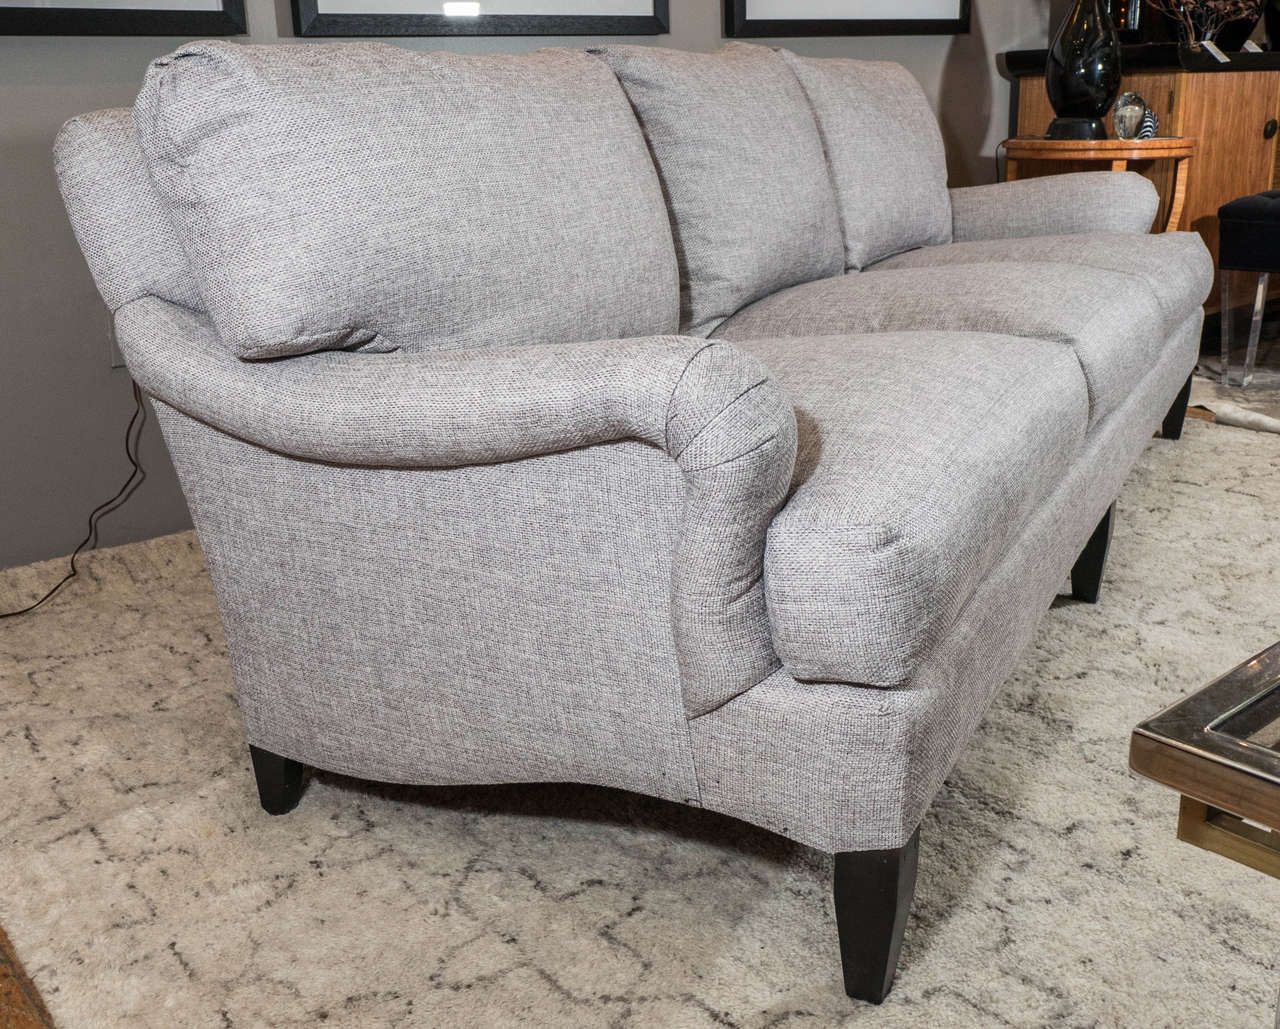 Ebonized Late 20th Century English Arm Sofa in Grey Linen and Down Cushions For Sale